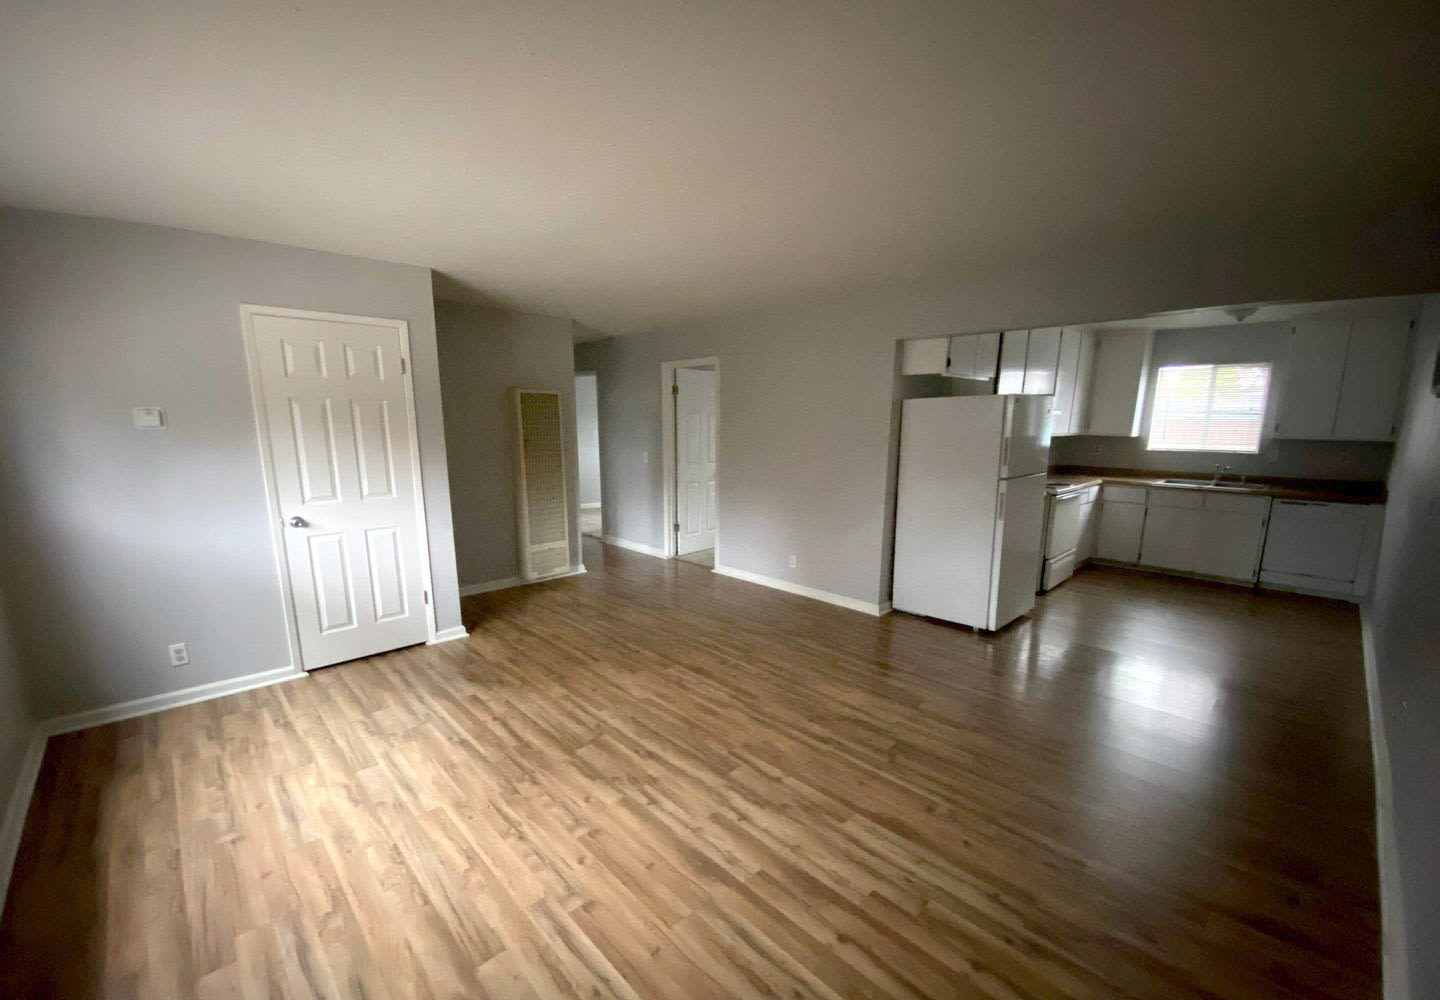 20 Best Apartments For Rent In Chico Ca With Pictures